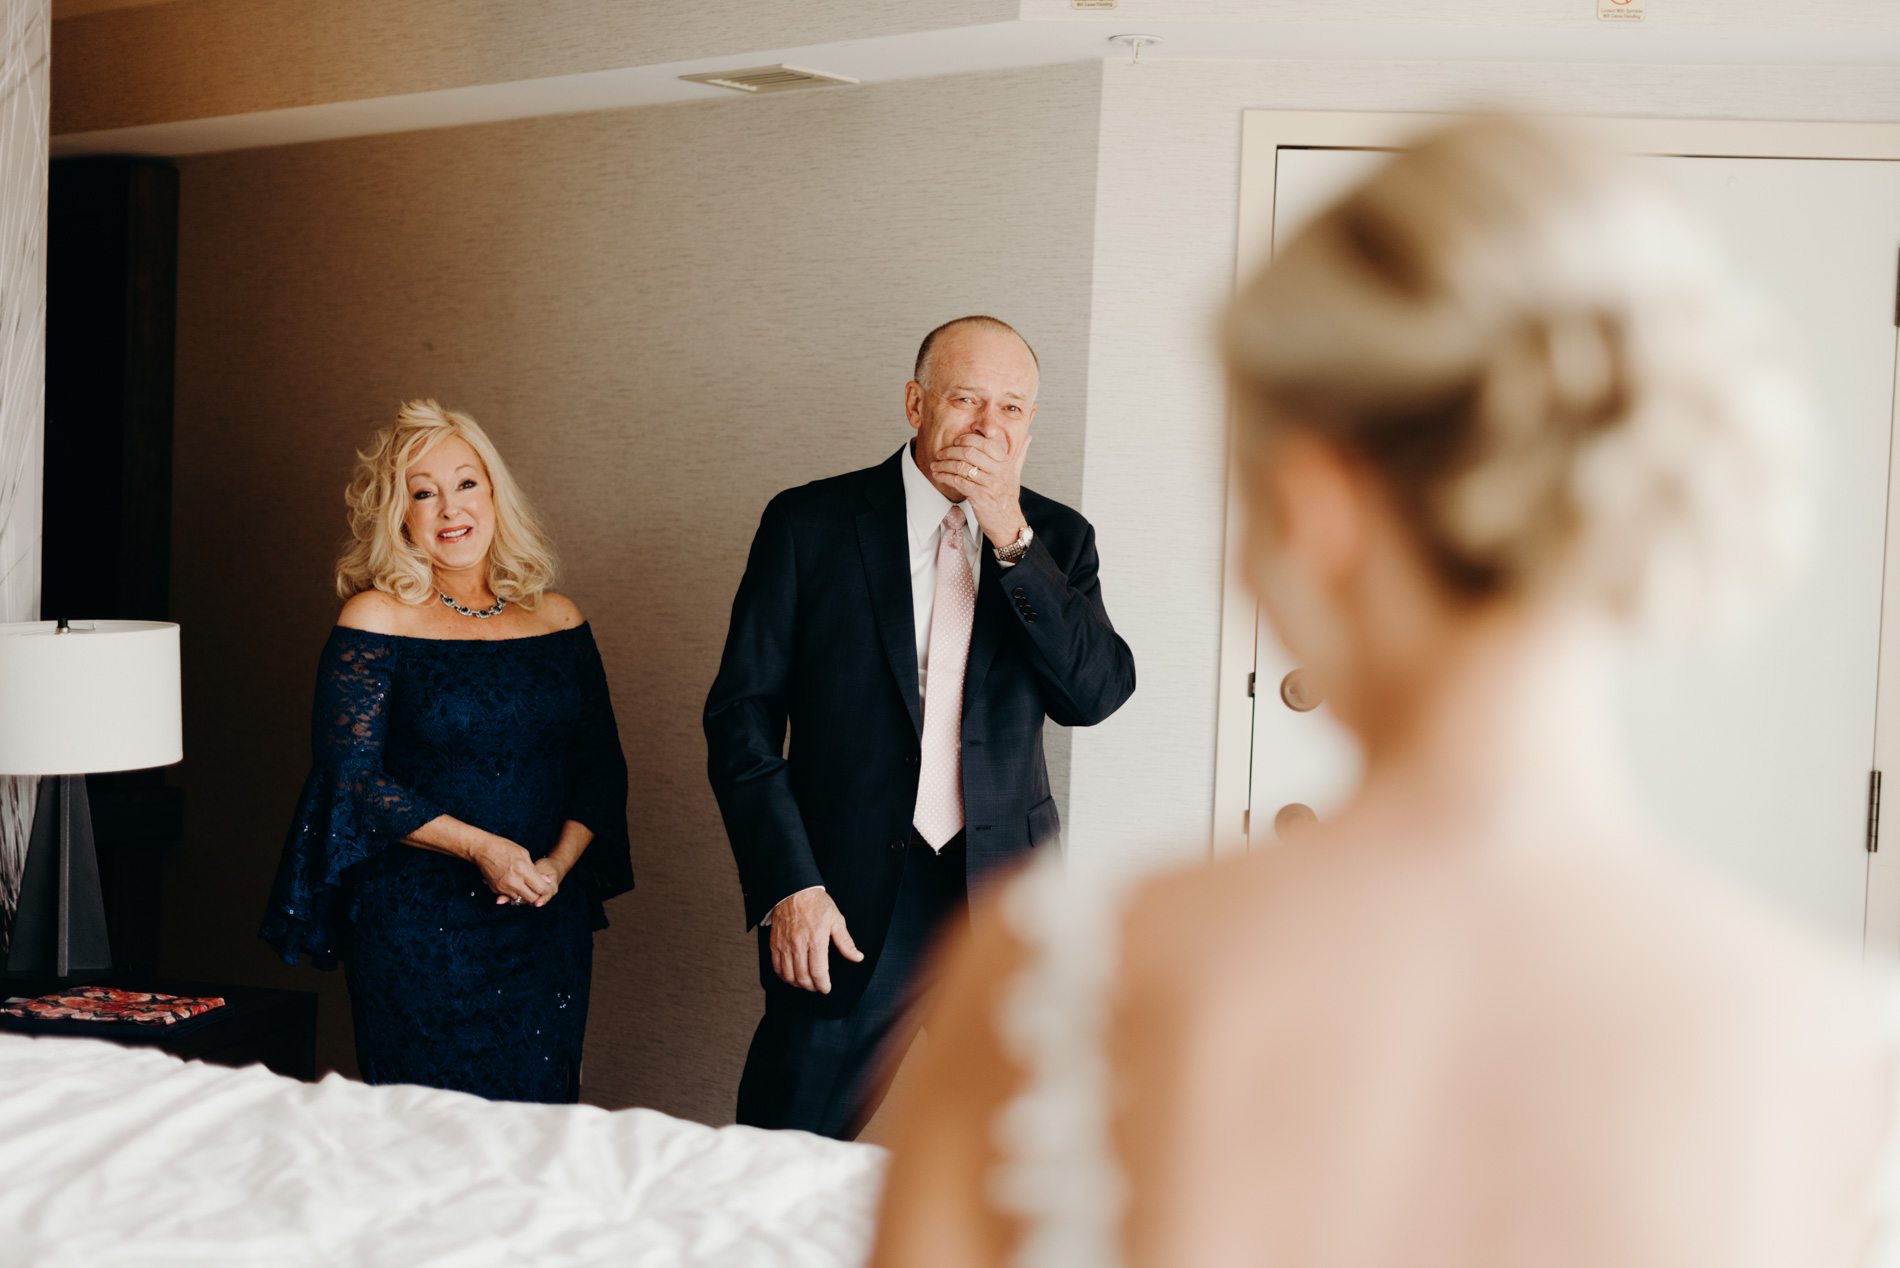 lionsgate-event-center-lionsgate-wedding-emotional-first-look-with-dad-lionsgate-wedding-photography